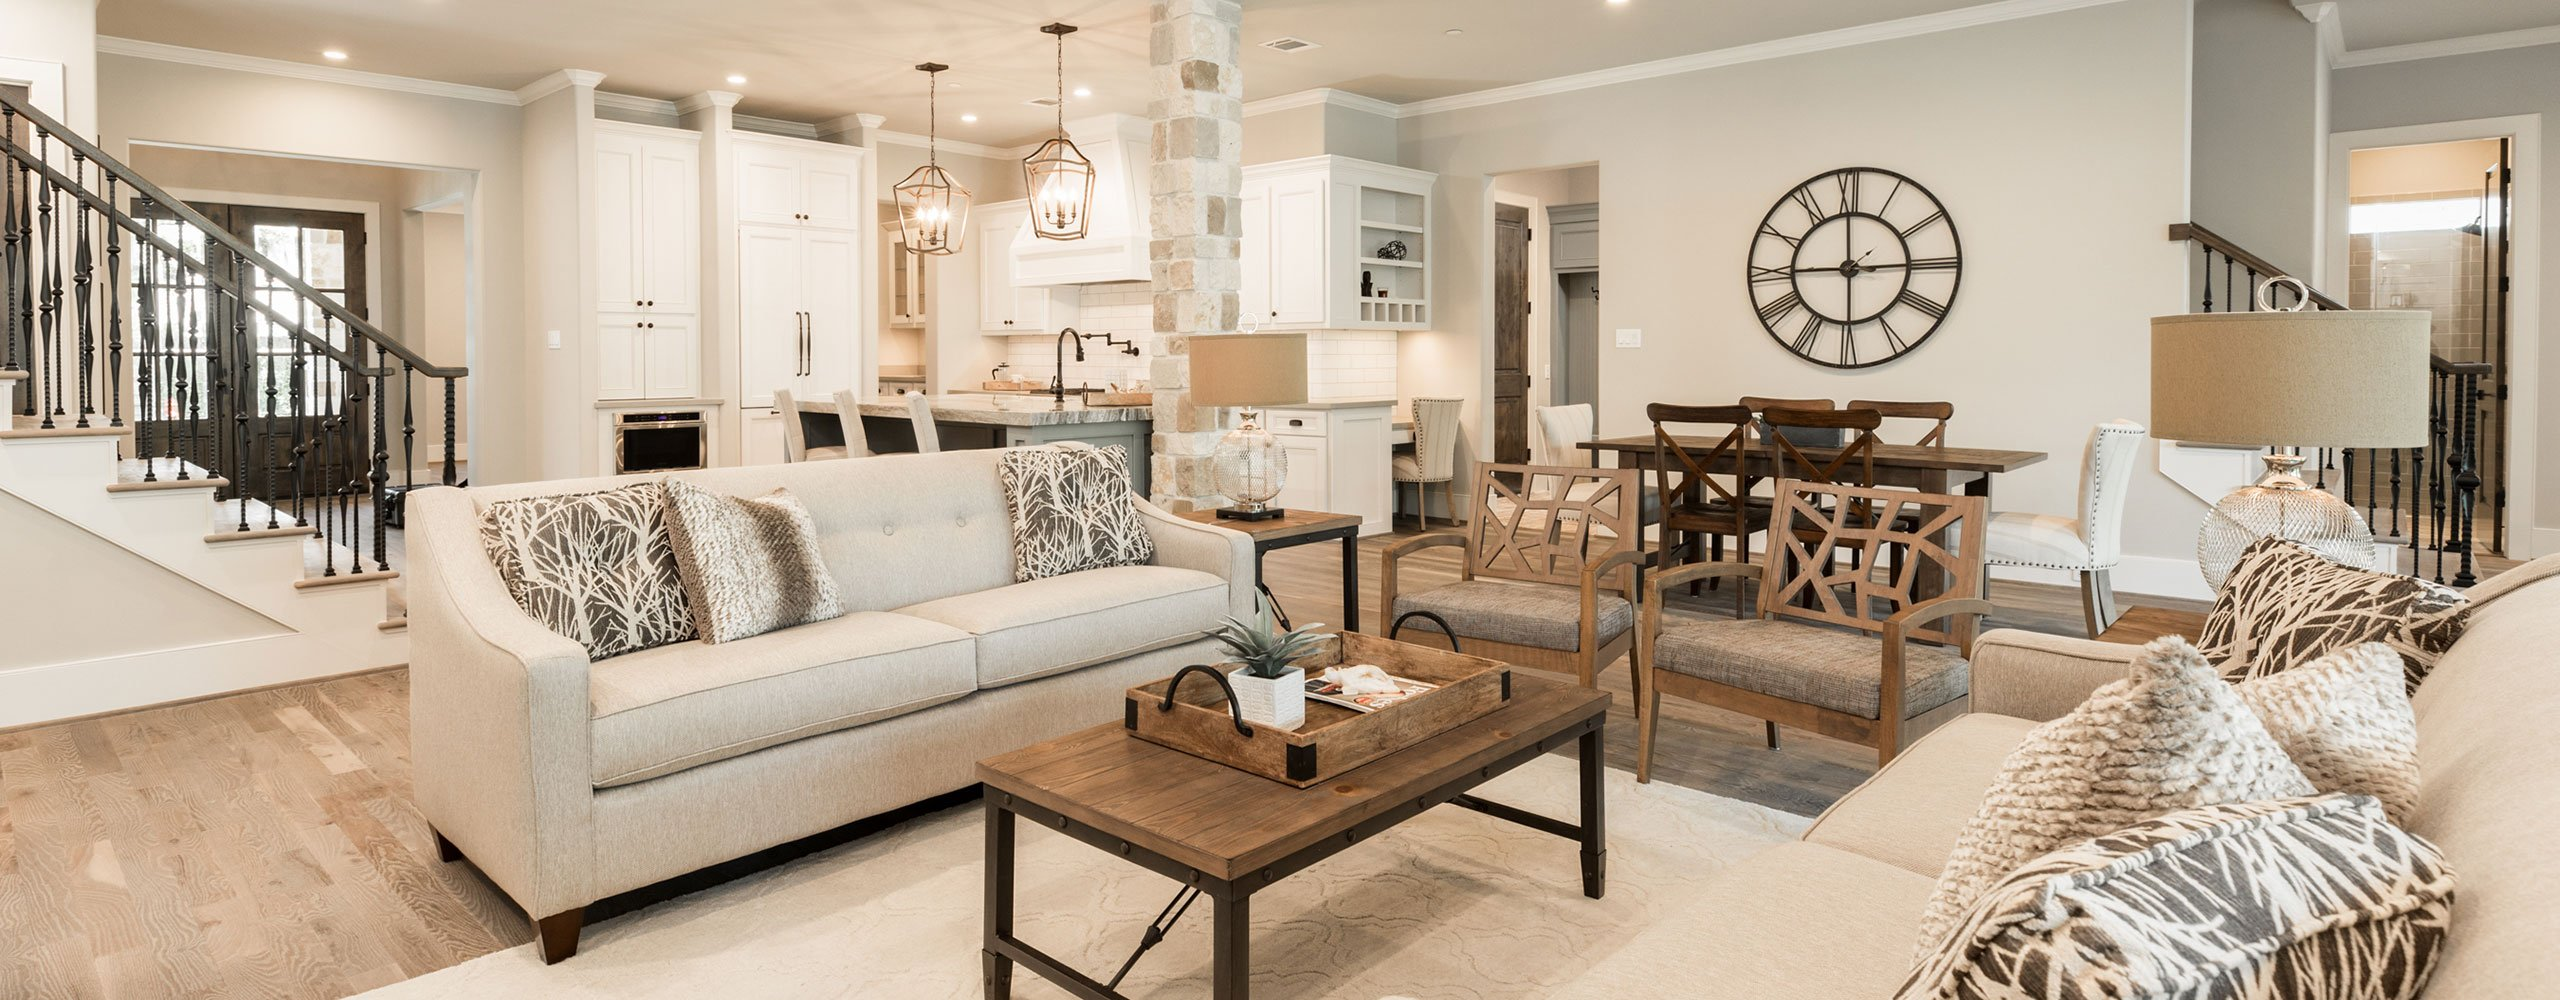 Living room staging in Houston, Texas